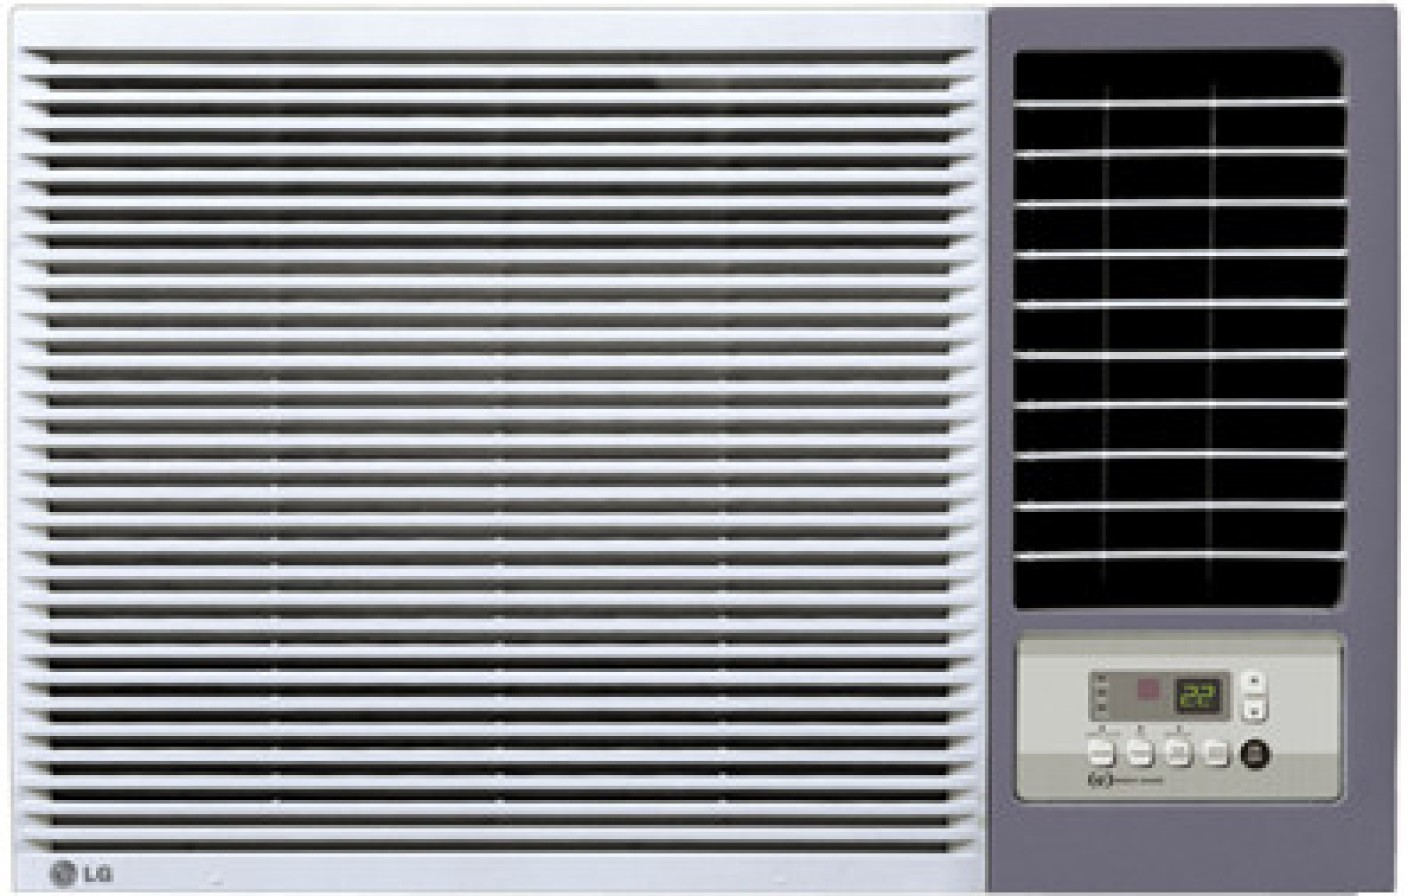 Buy lg 1 5 ton 3 star bee rating 2017 for 2 ton window ac 5 star rating